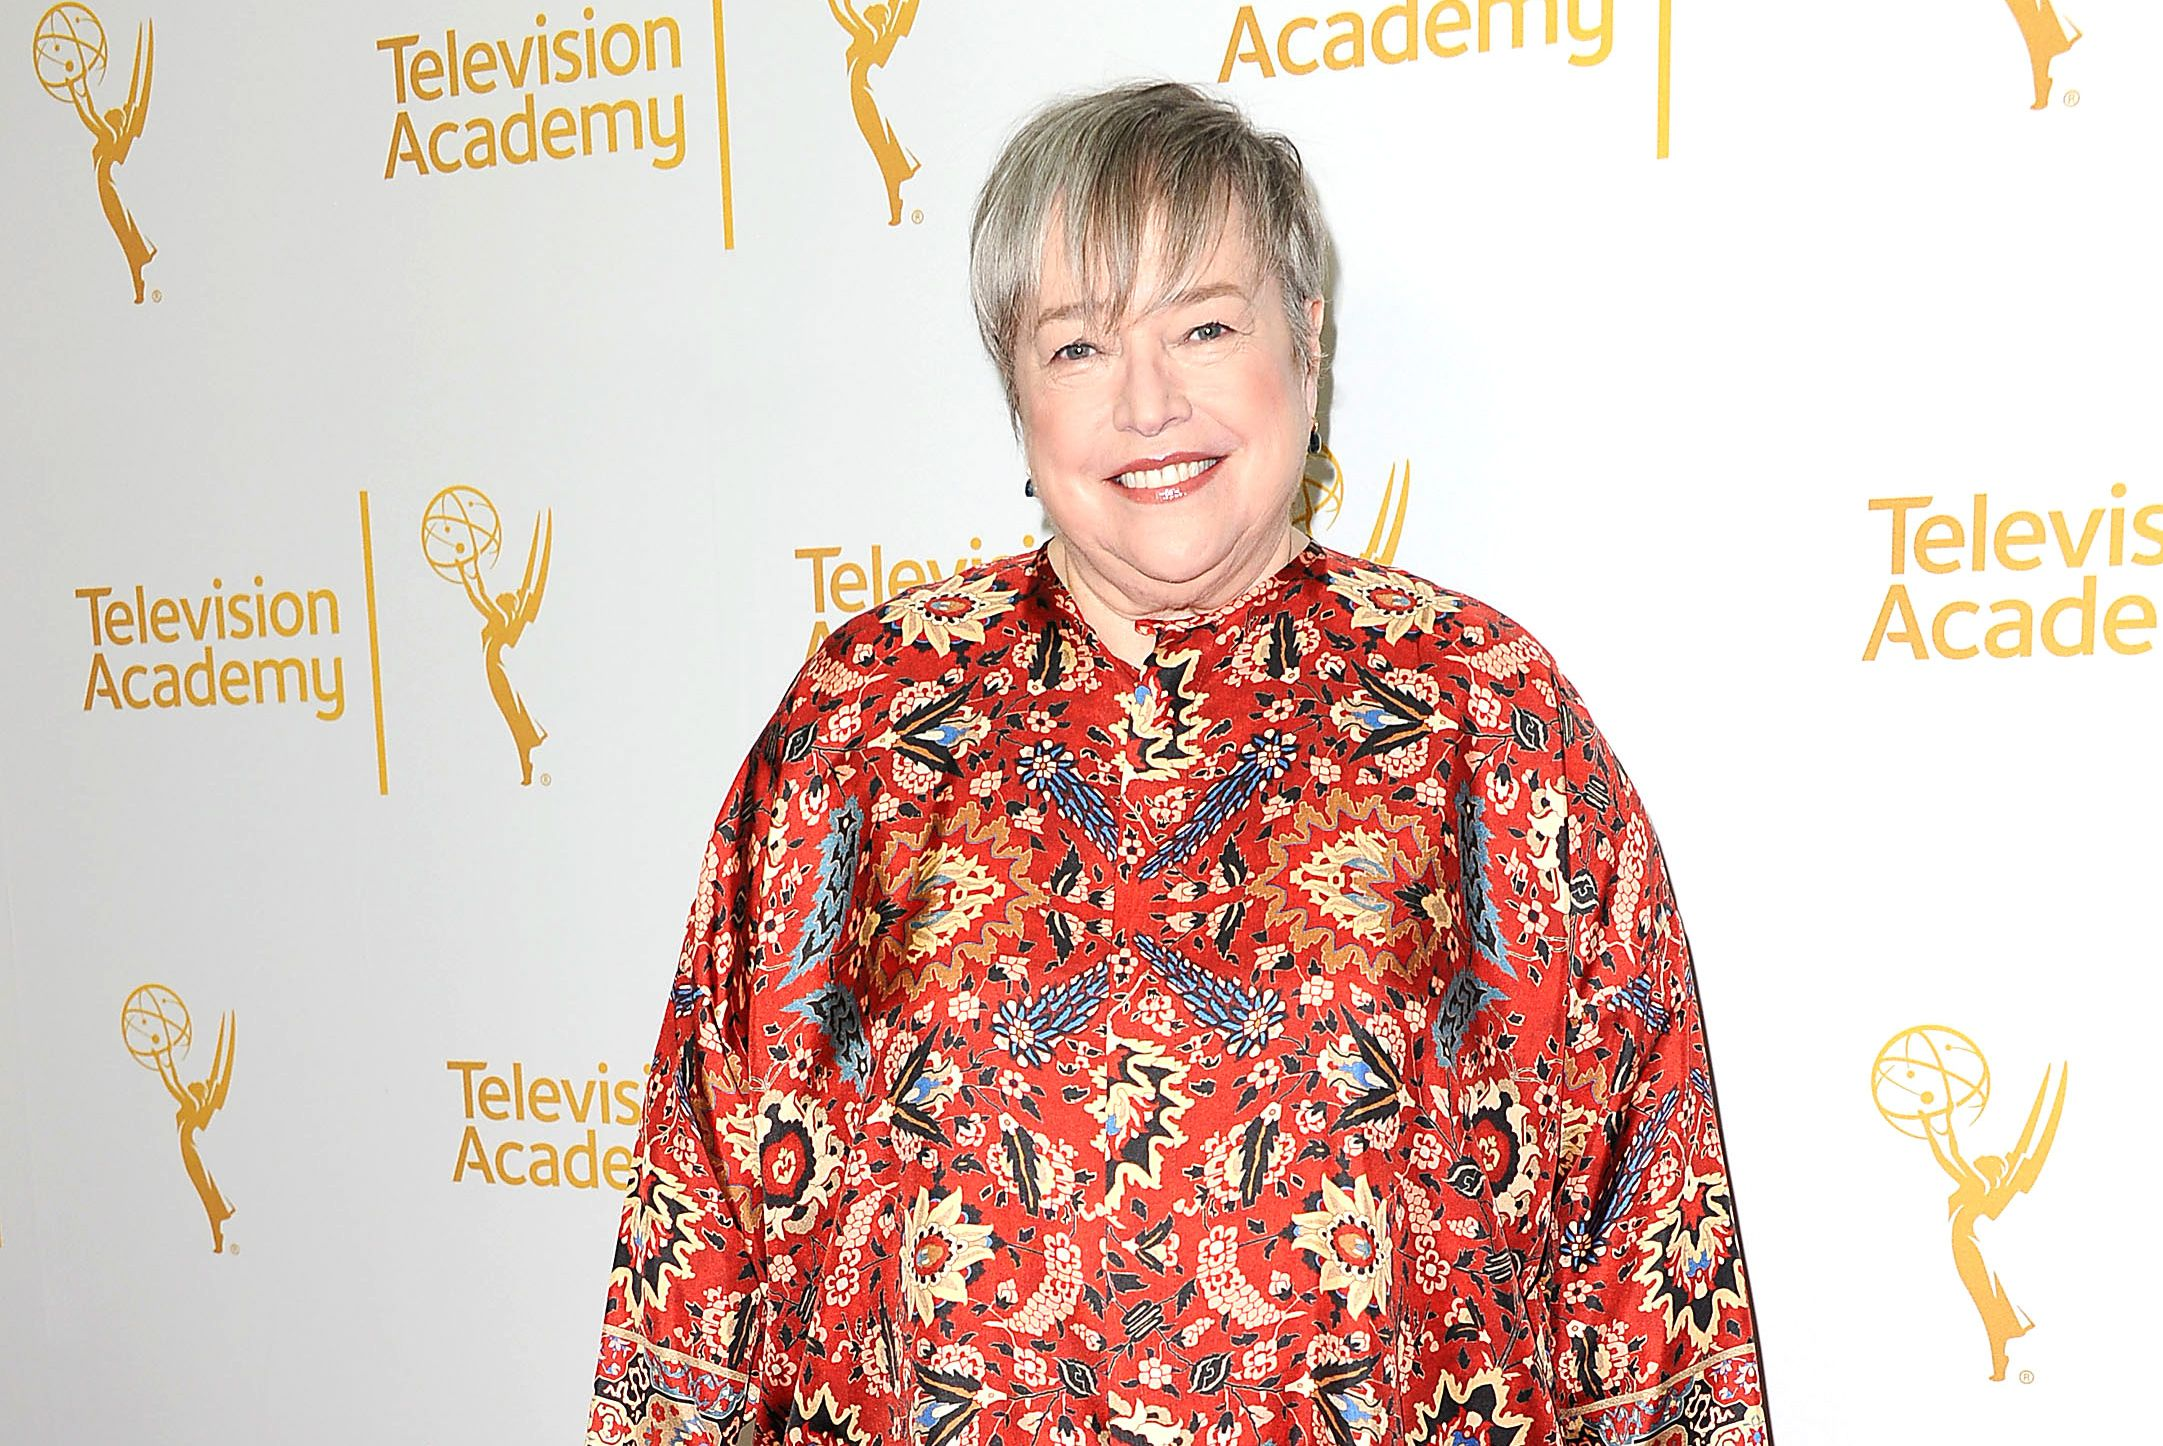 Kathy Bates looks unrecognisable after unveiling 60lbs weight loss